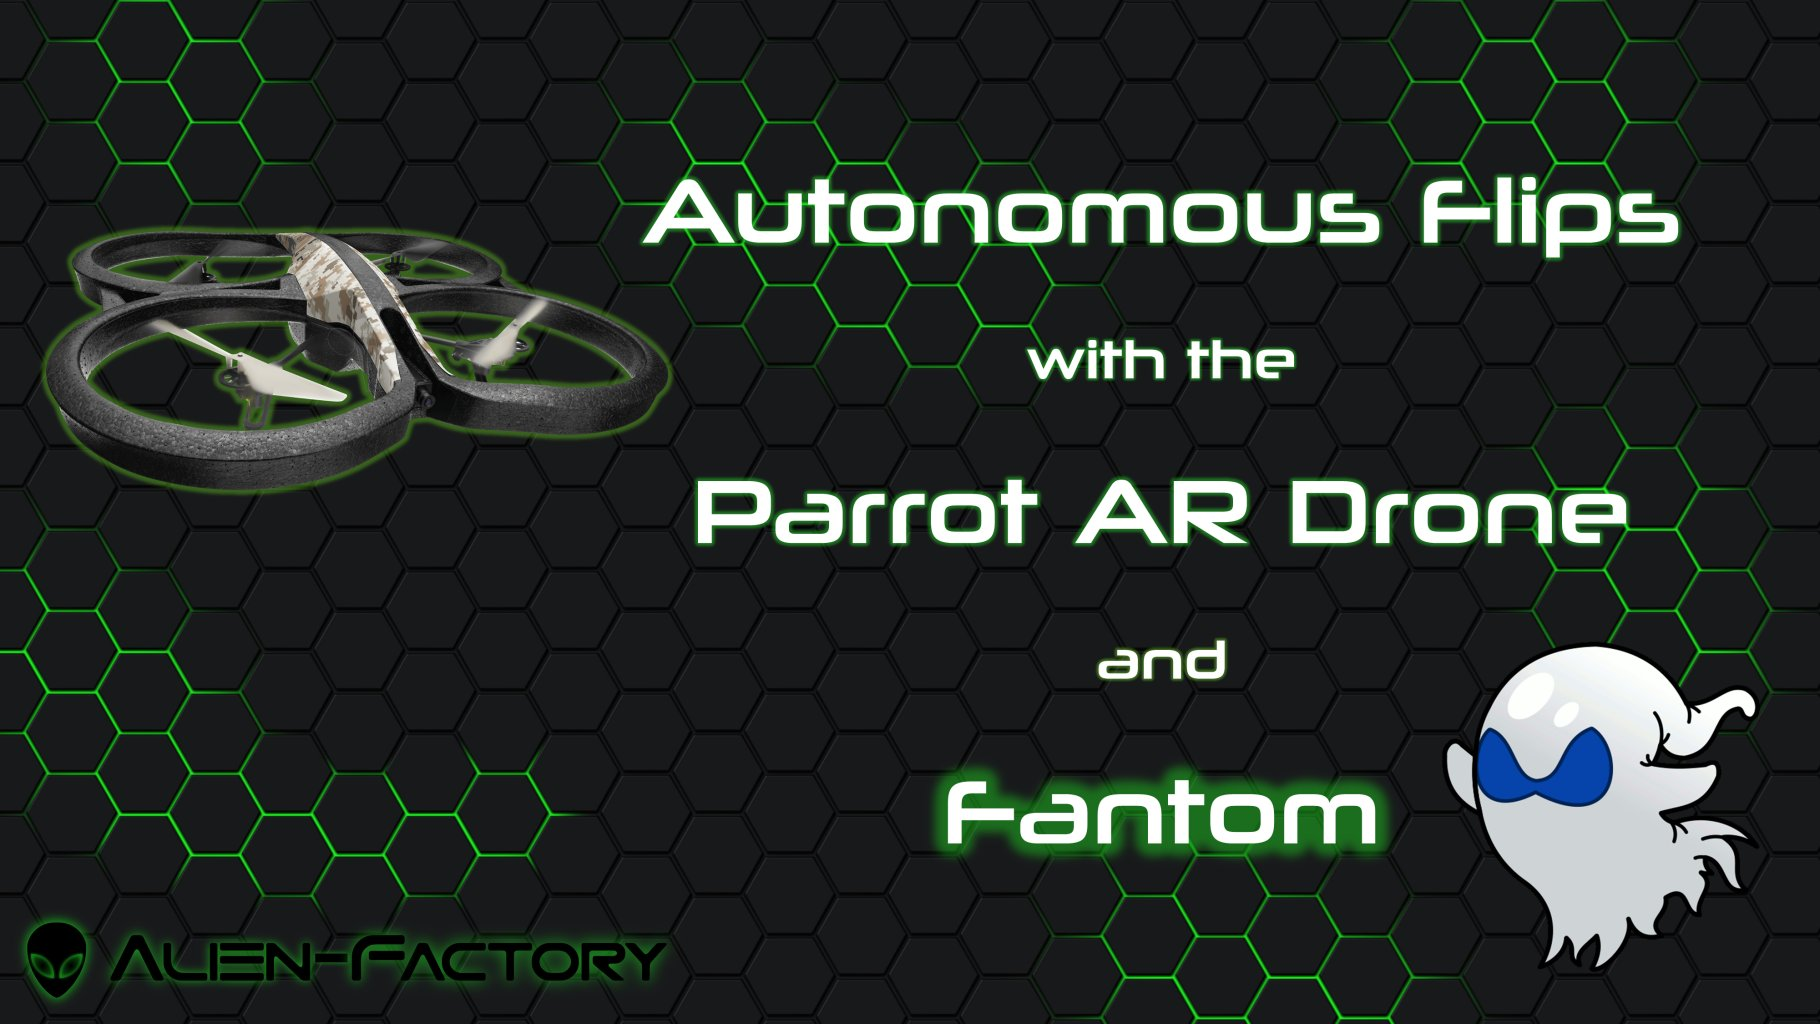 parrot ar drone programming with Autonomous Flips With The Parrot Ar Drone on Flying The Ar2 0 Drone Beginners Guide 1 further Philid besides Seeeduino Stalker V2 in addition Parrot Ar Drone 2 0 besides Autonomous Flips With The Parrot Ar Drone.